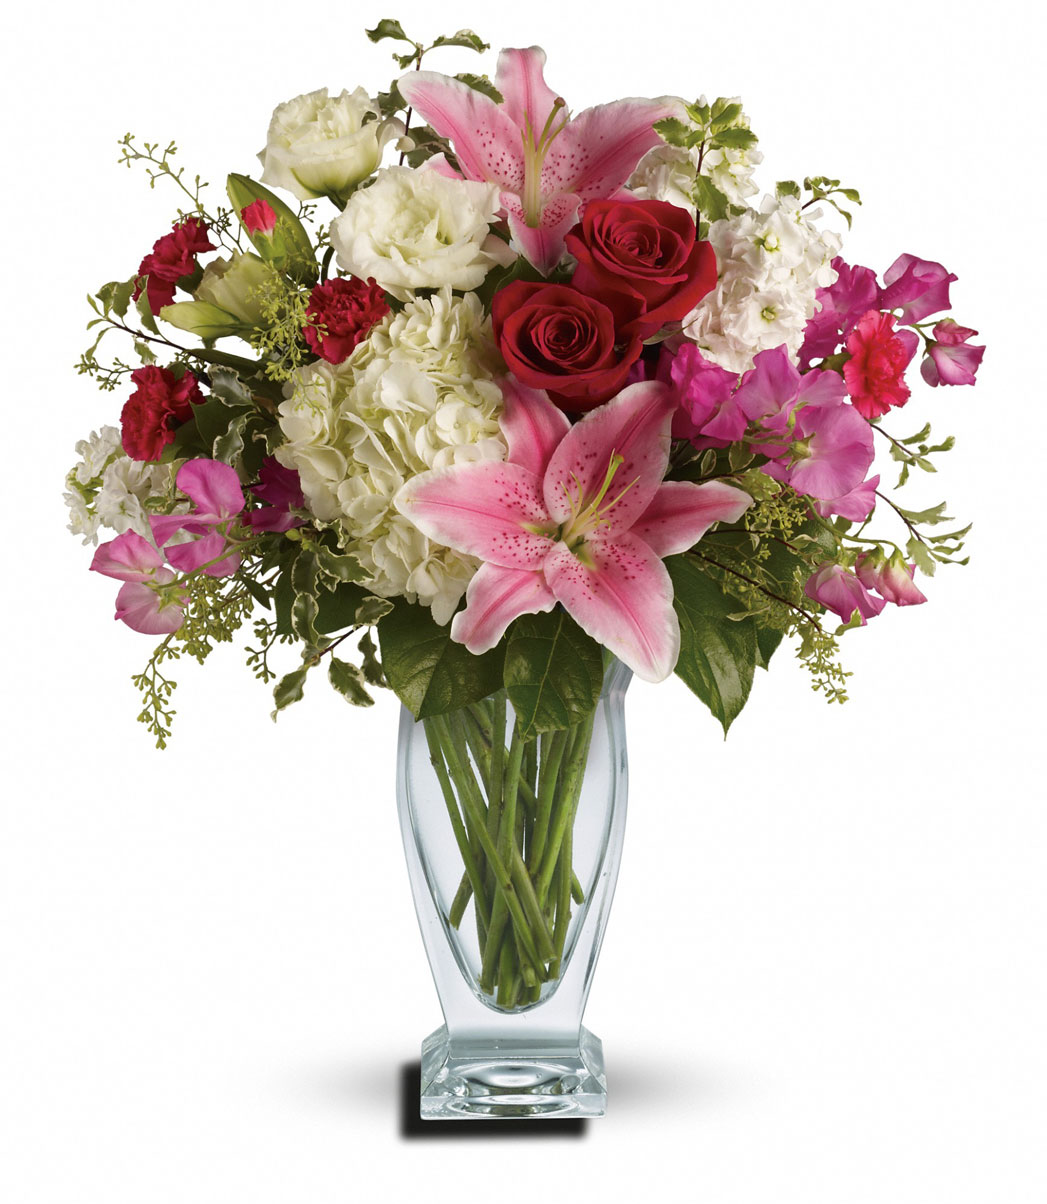 lillies-fresh-roses-flowers